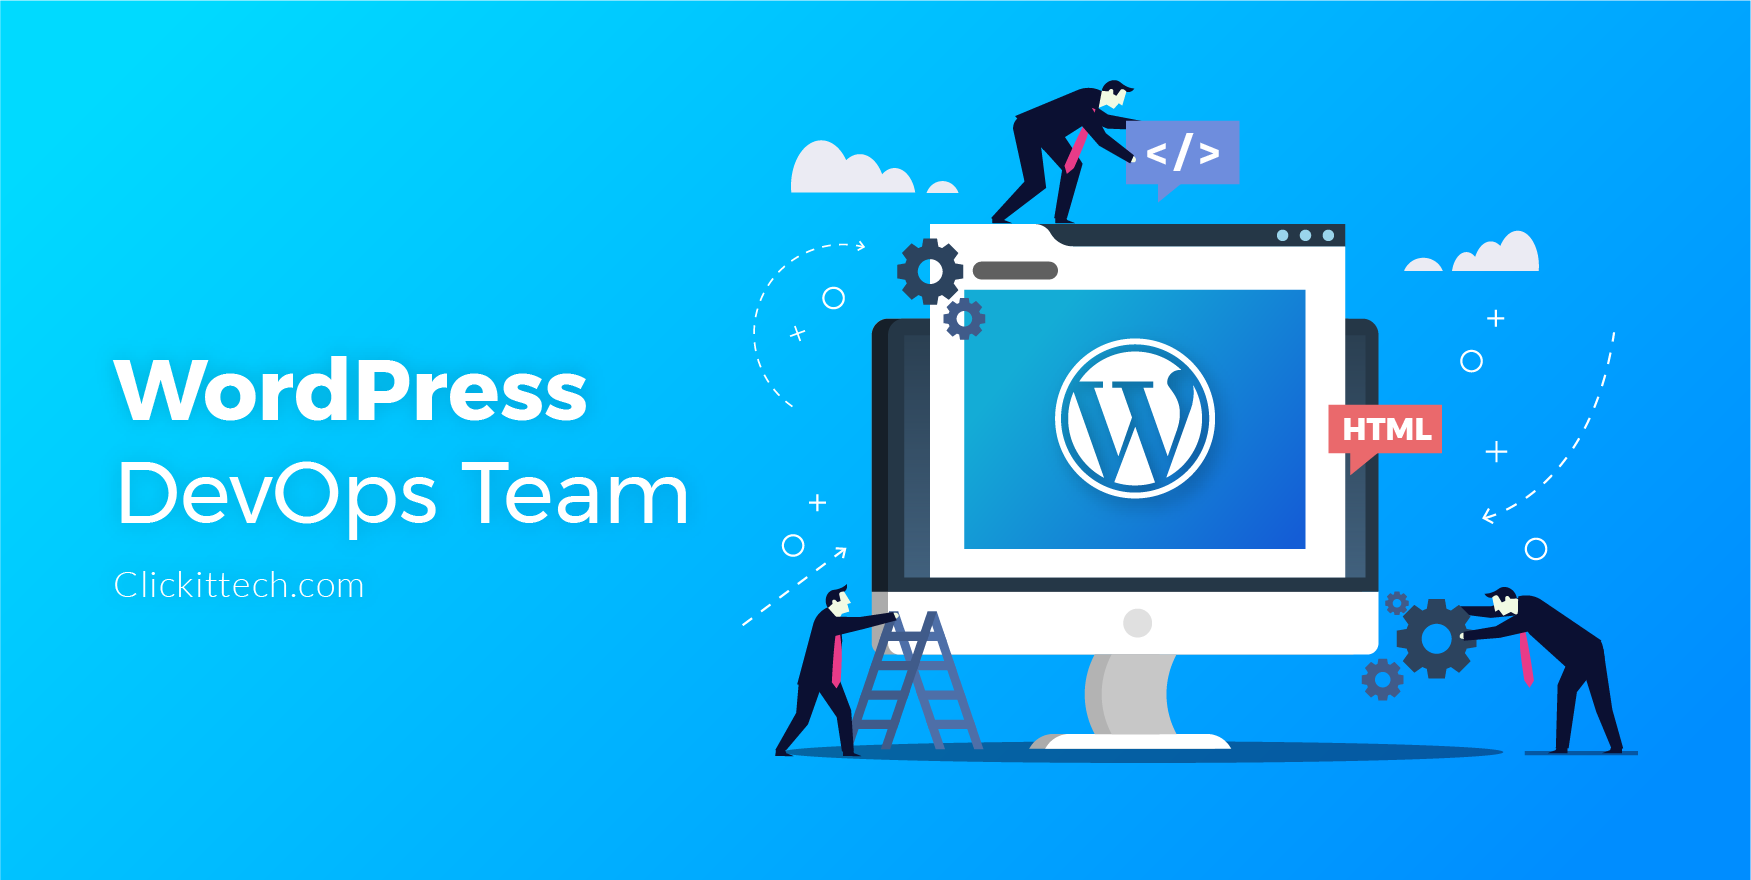 WordPress DevOps